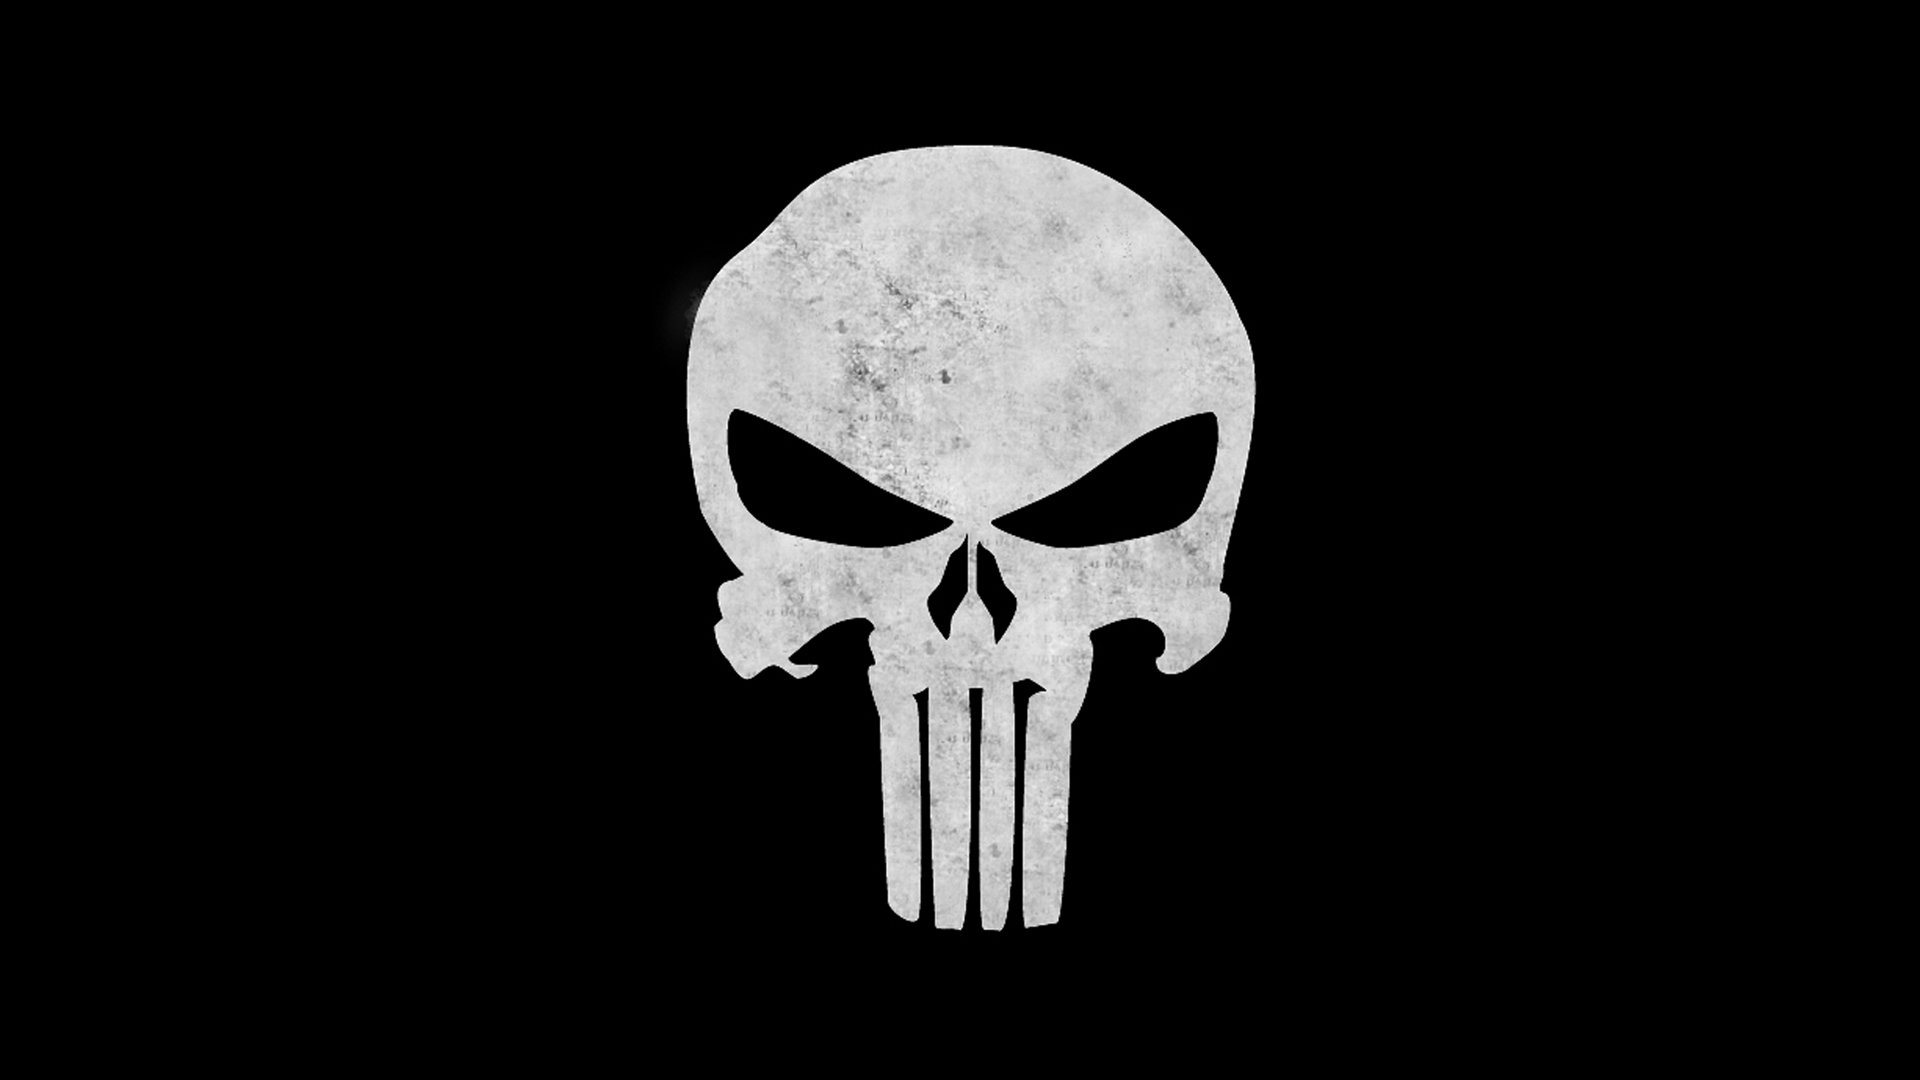 The Punisher Skull Wallpaper | Free | Download